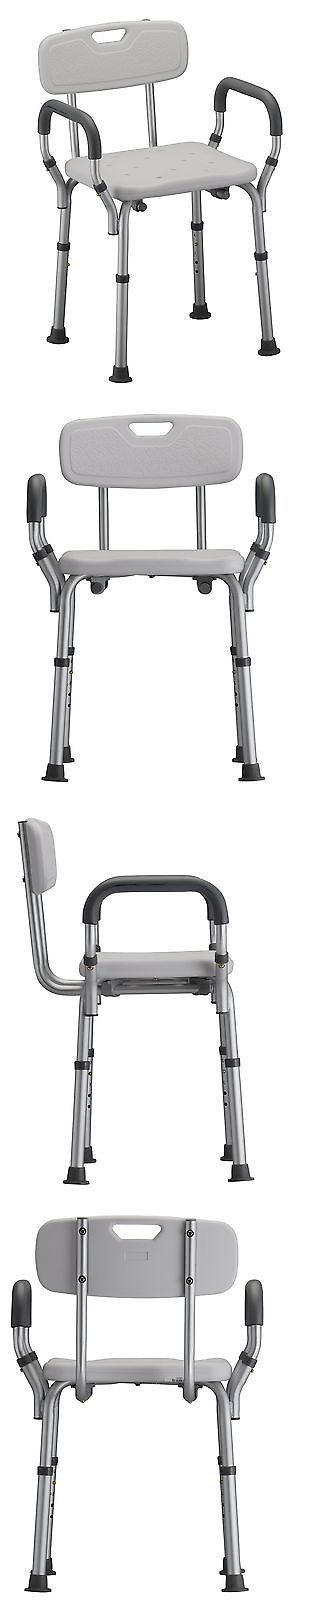 Shower and Bath Seats: Nova Medical Products Deluxe Bath Seat With Back And Arms -> BUY IT NOW ONLY: $58.43 on eBay!